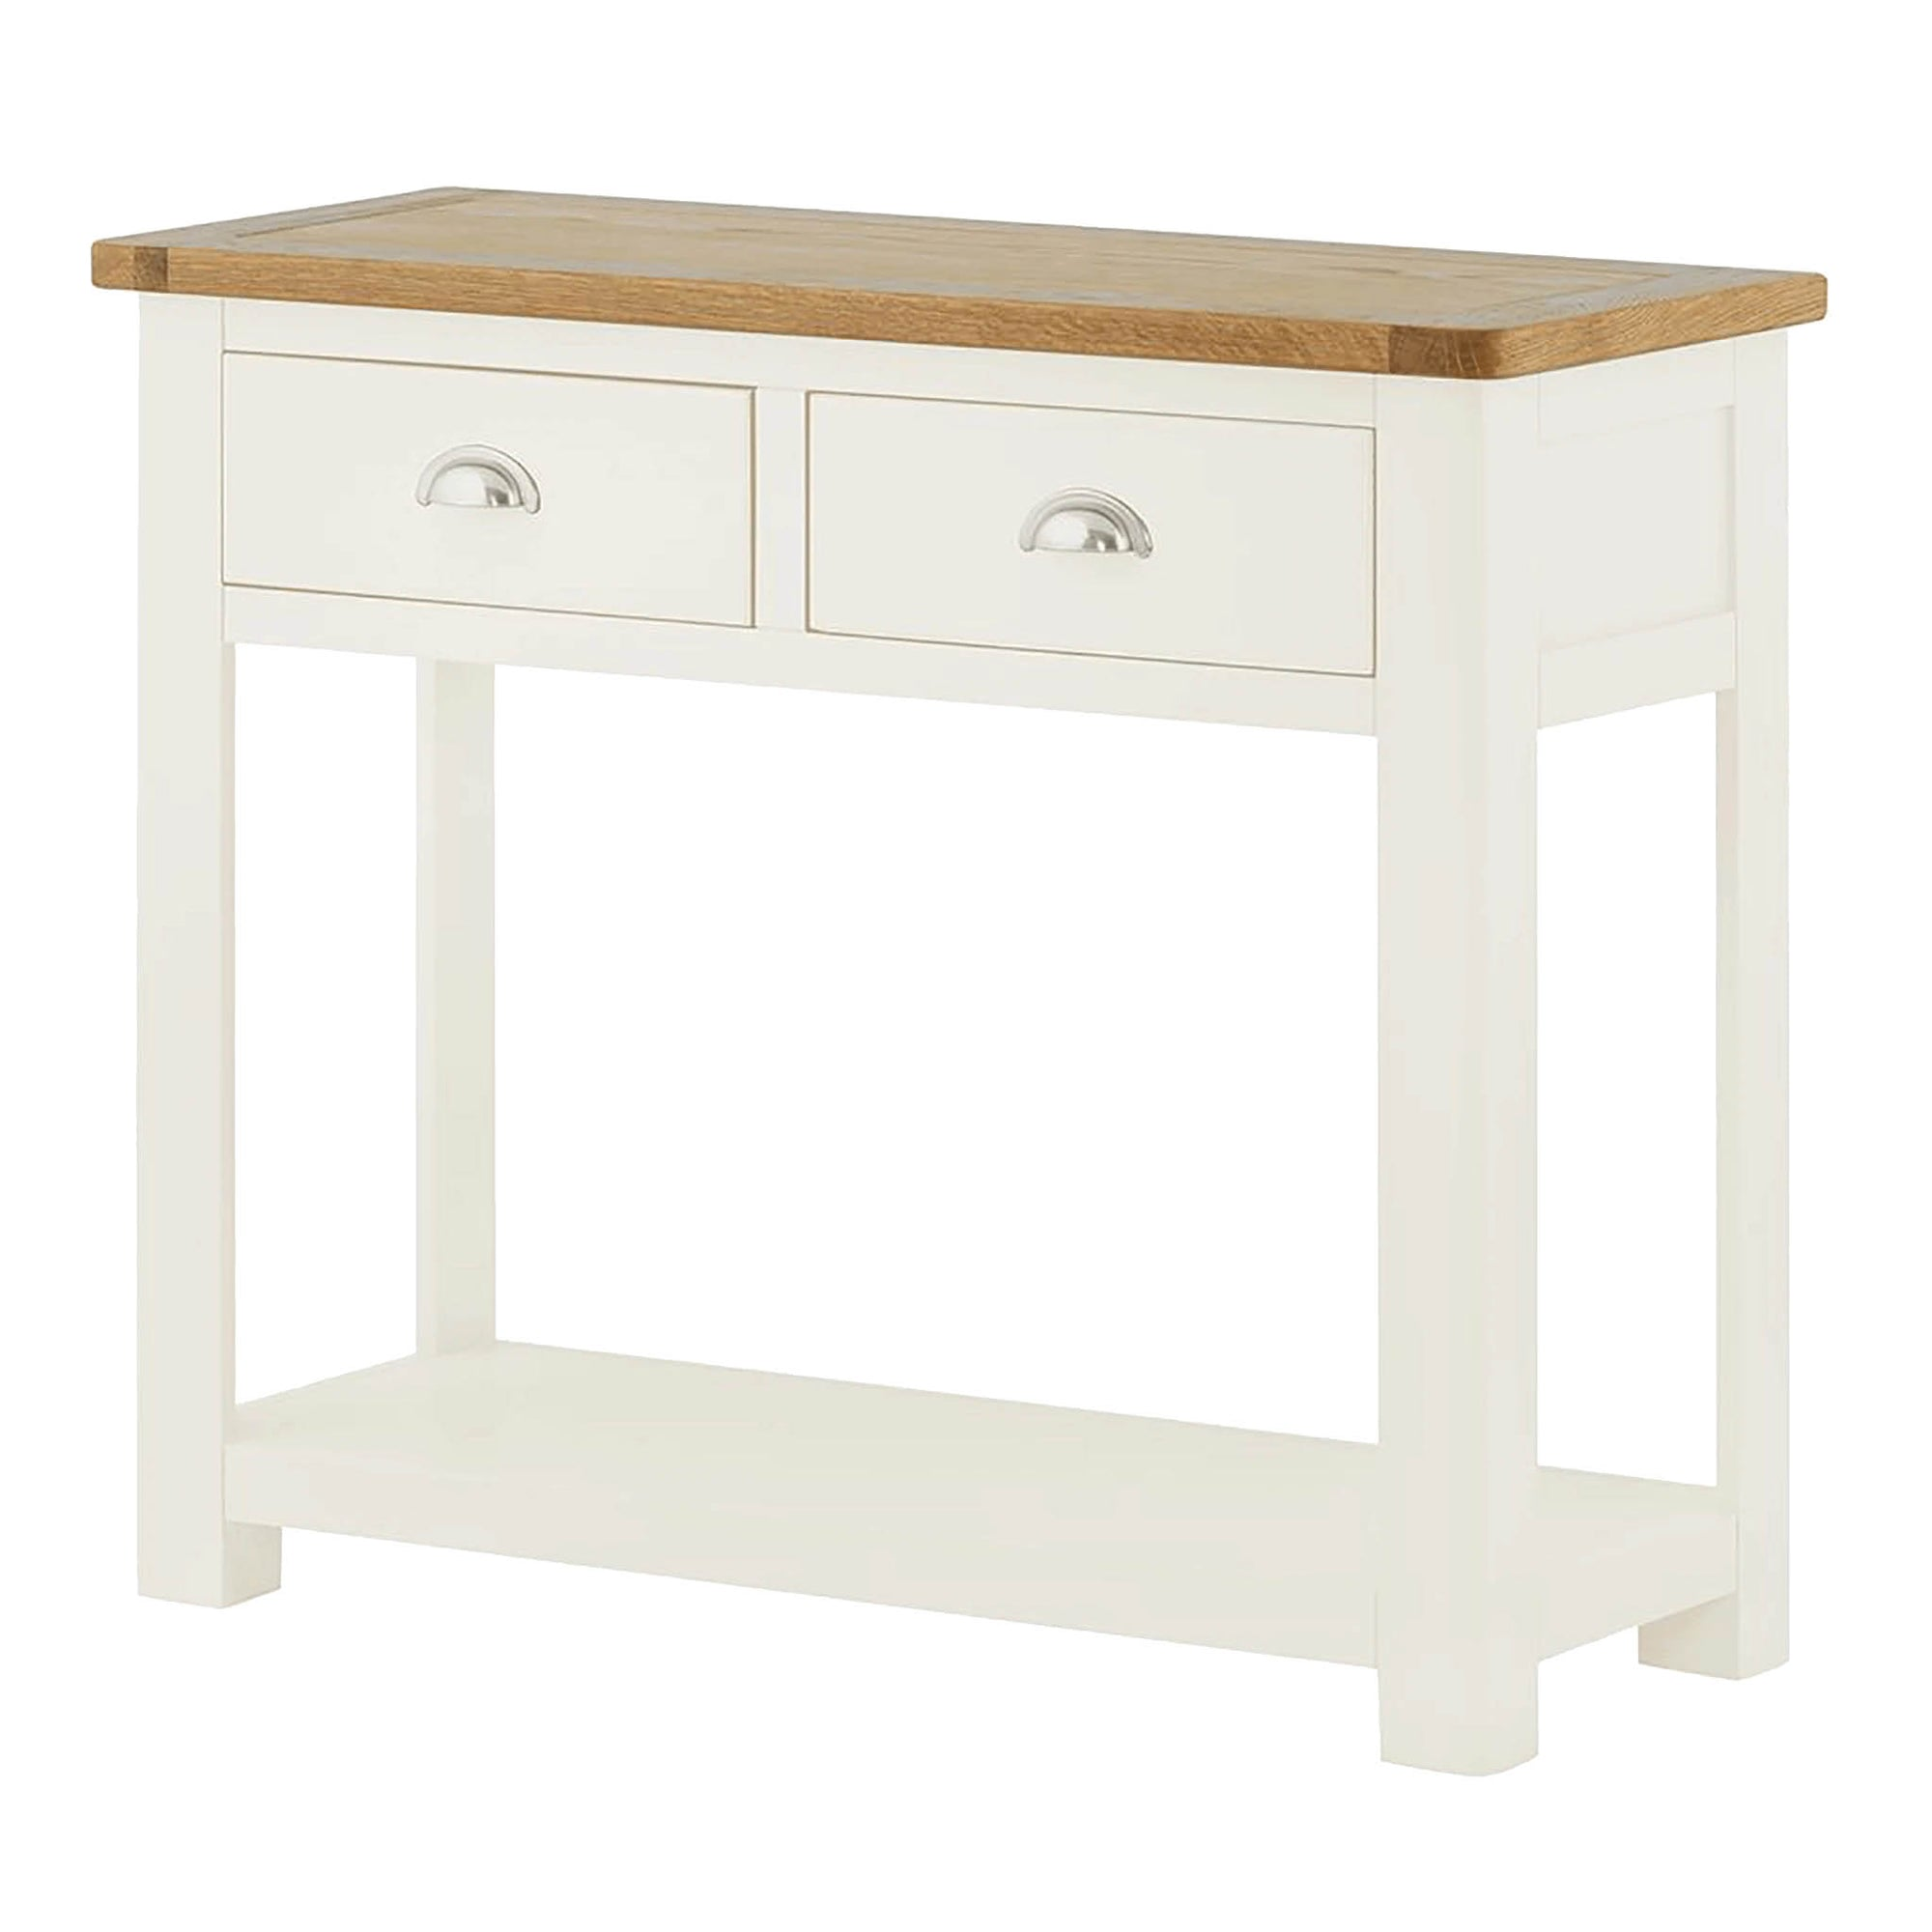 Picture of: Padstow White Console Table Drawers Hallway Stand Solid Wood Oak Roseland Furniture